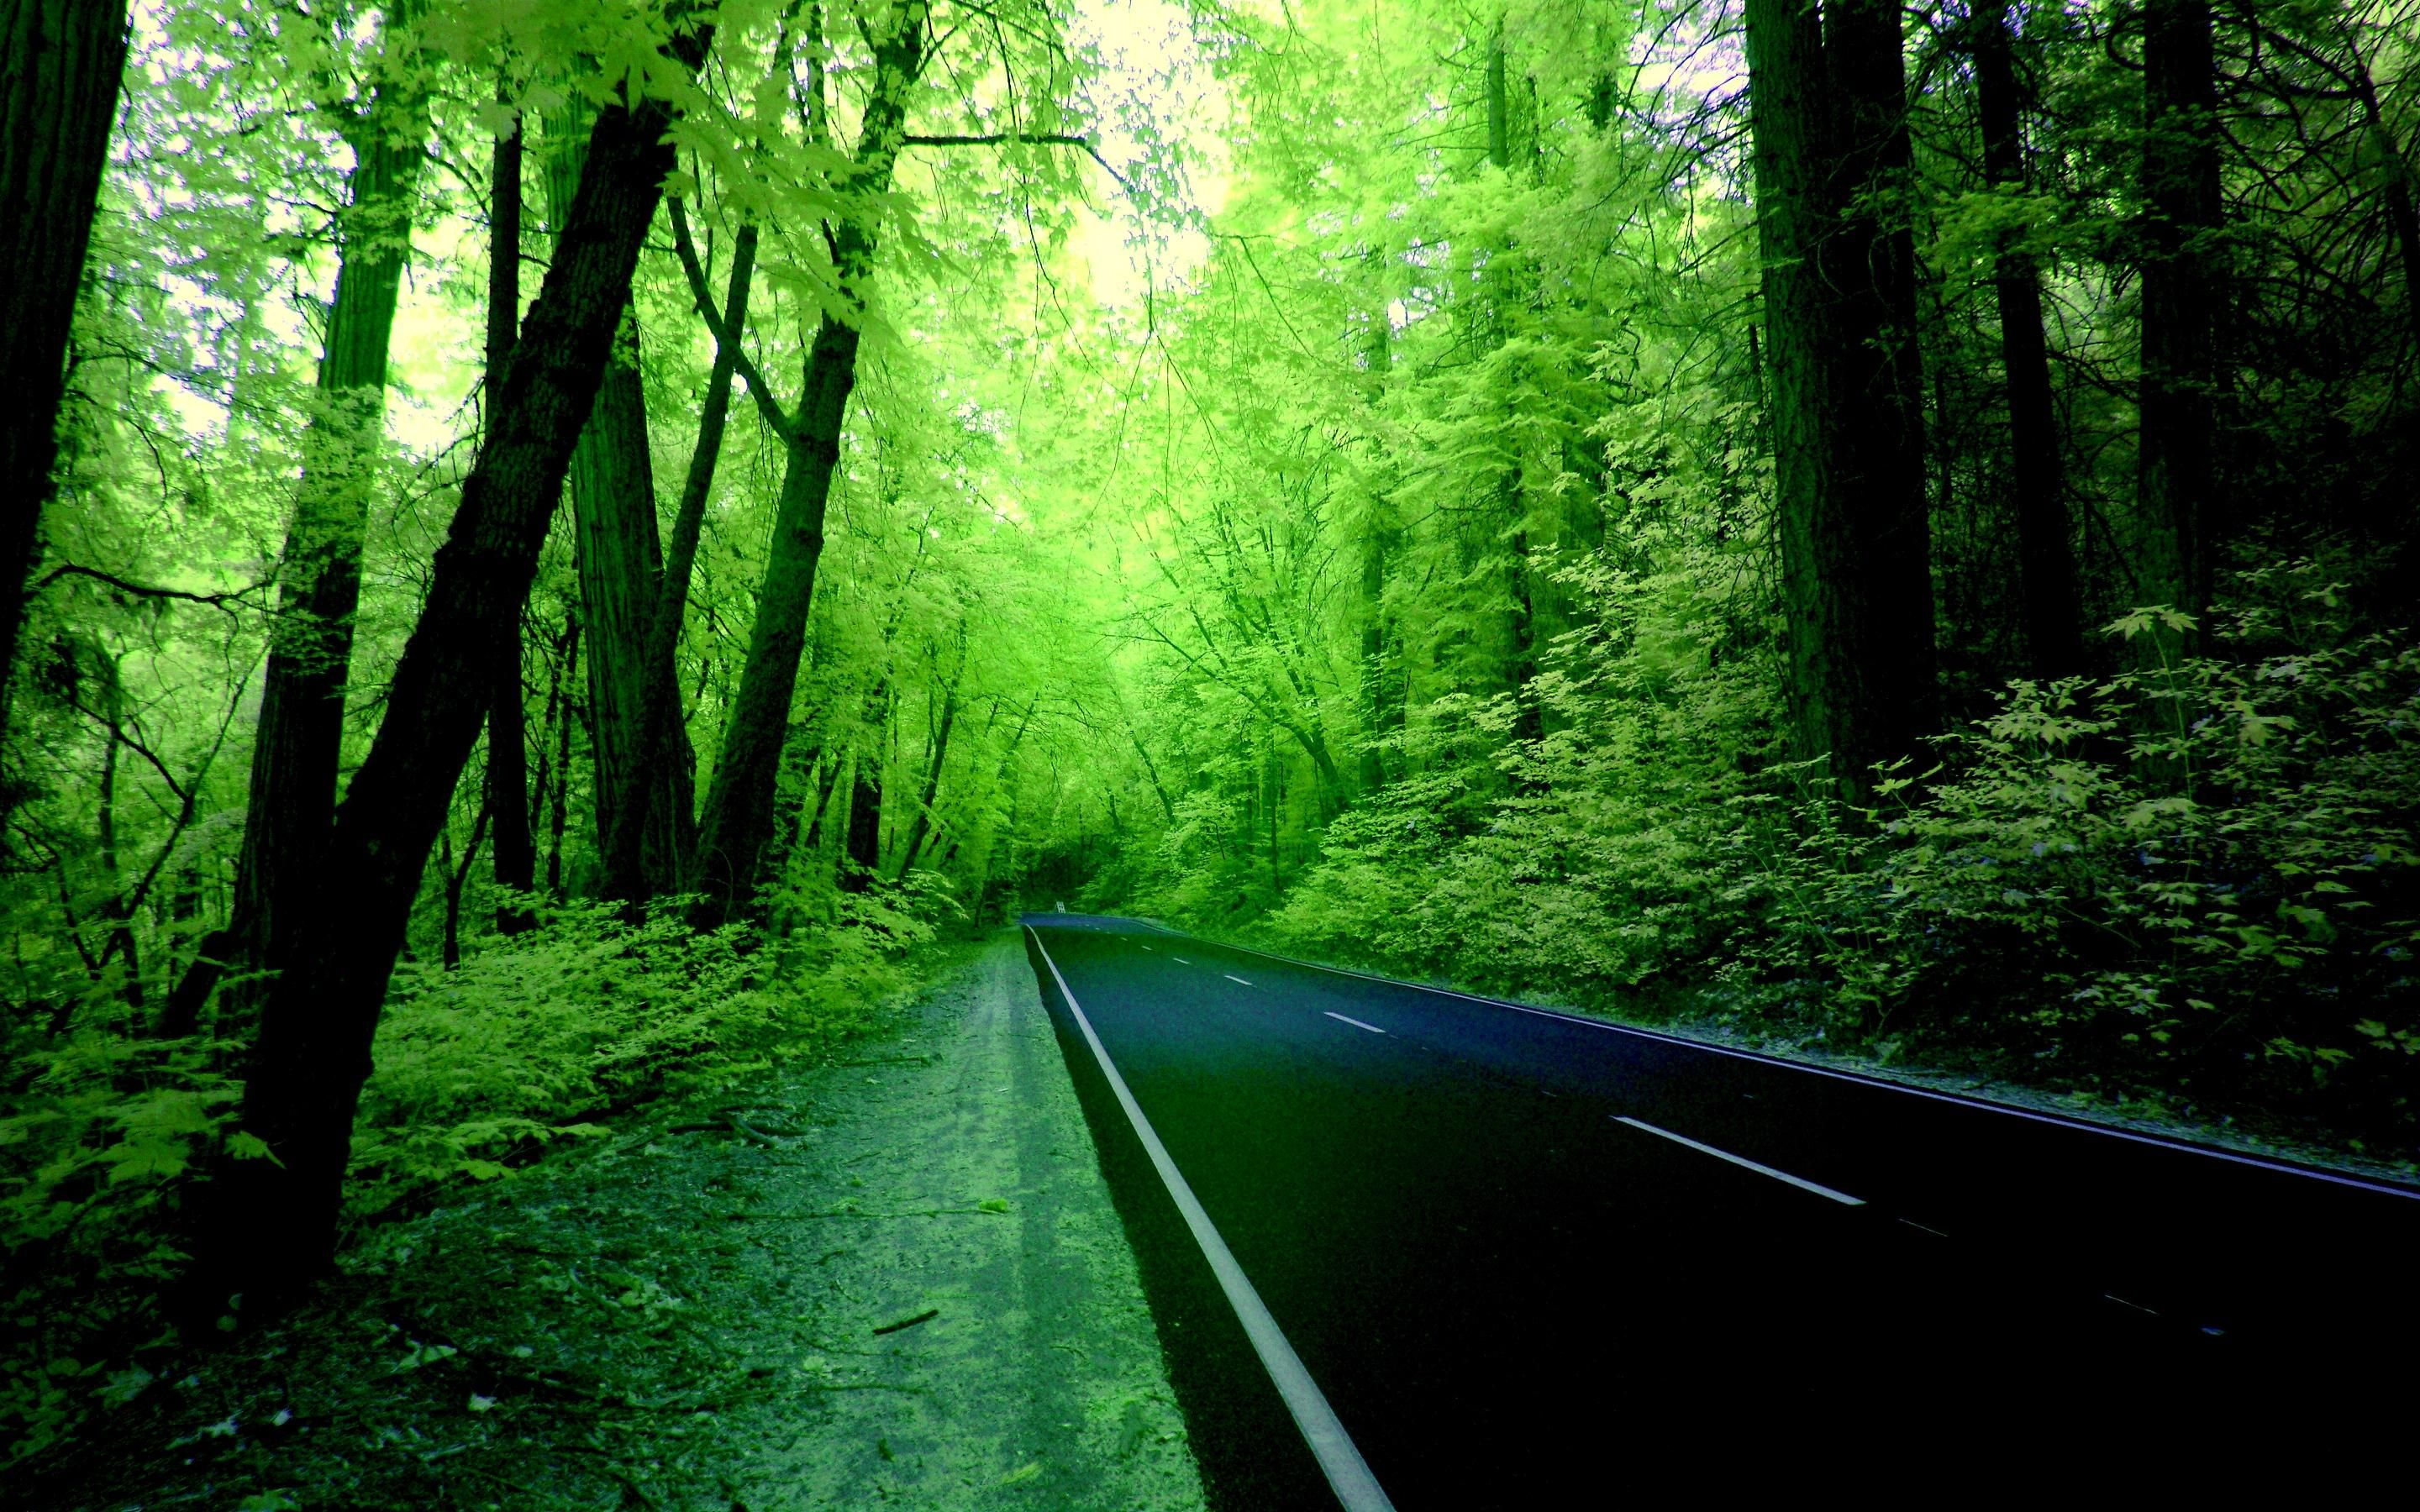 green nature background hd - photo #44